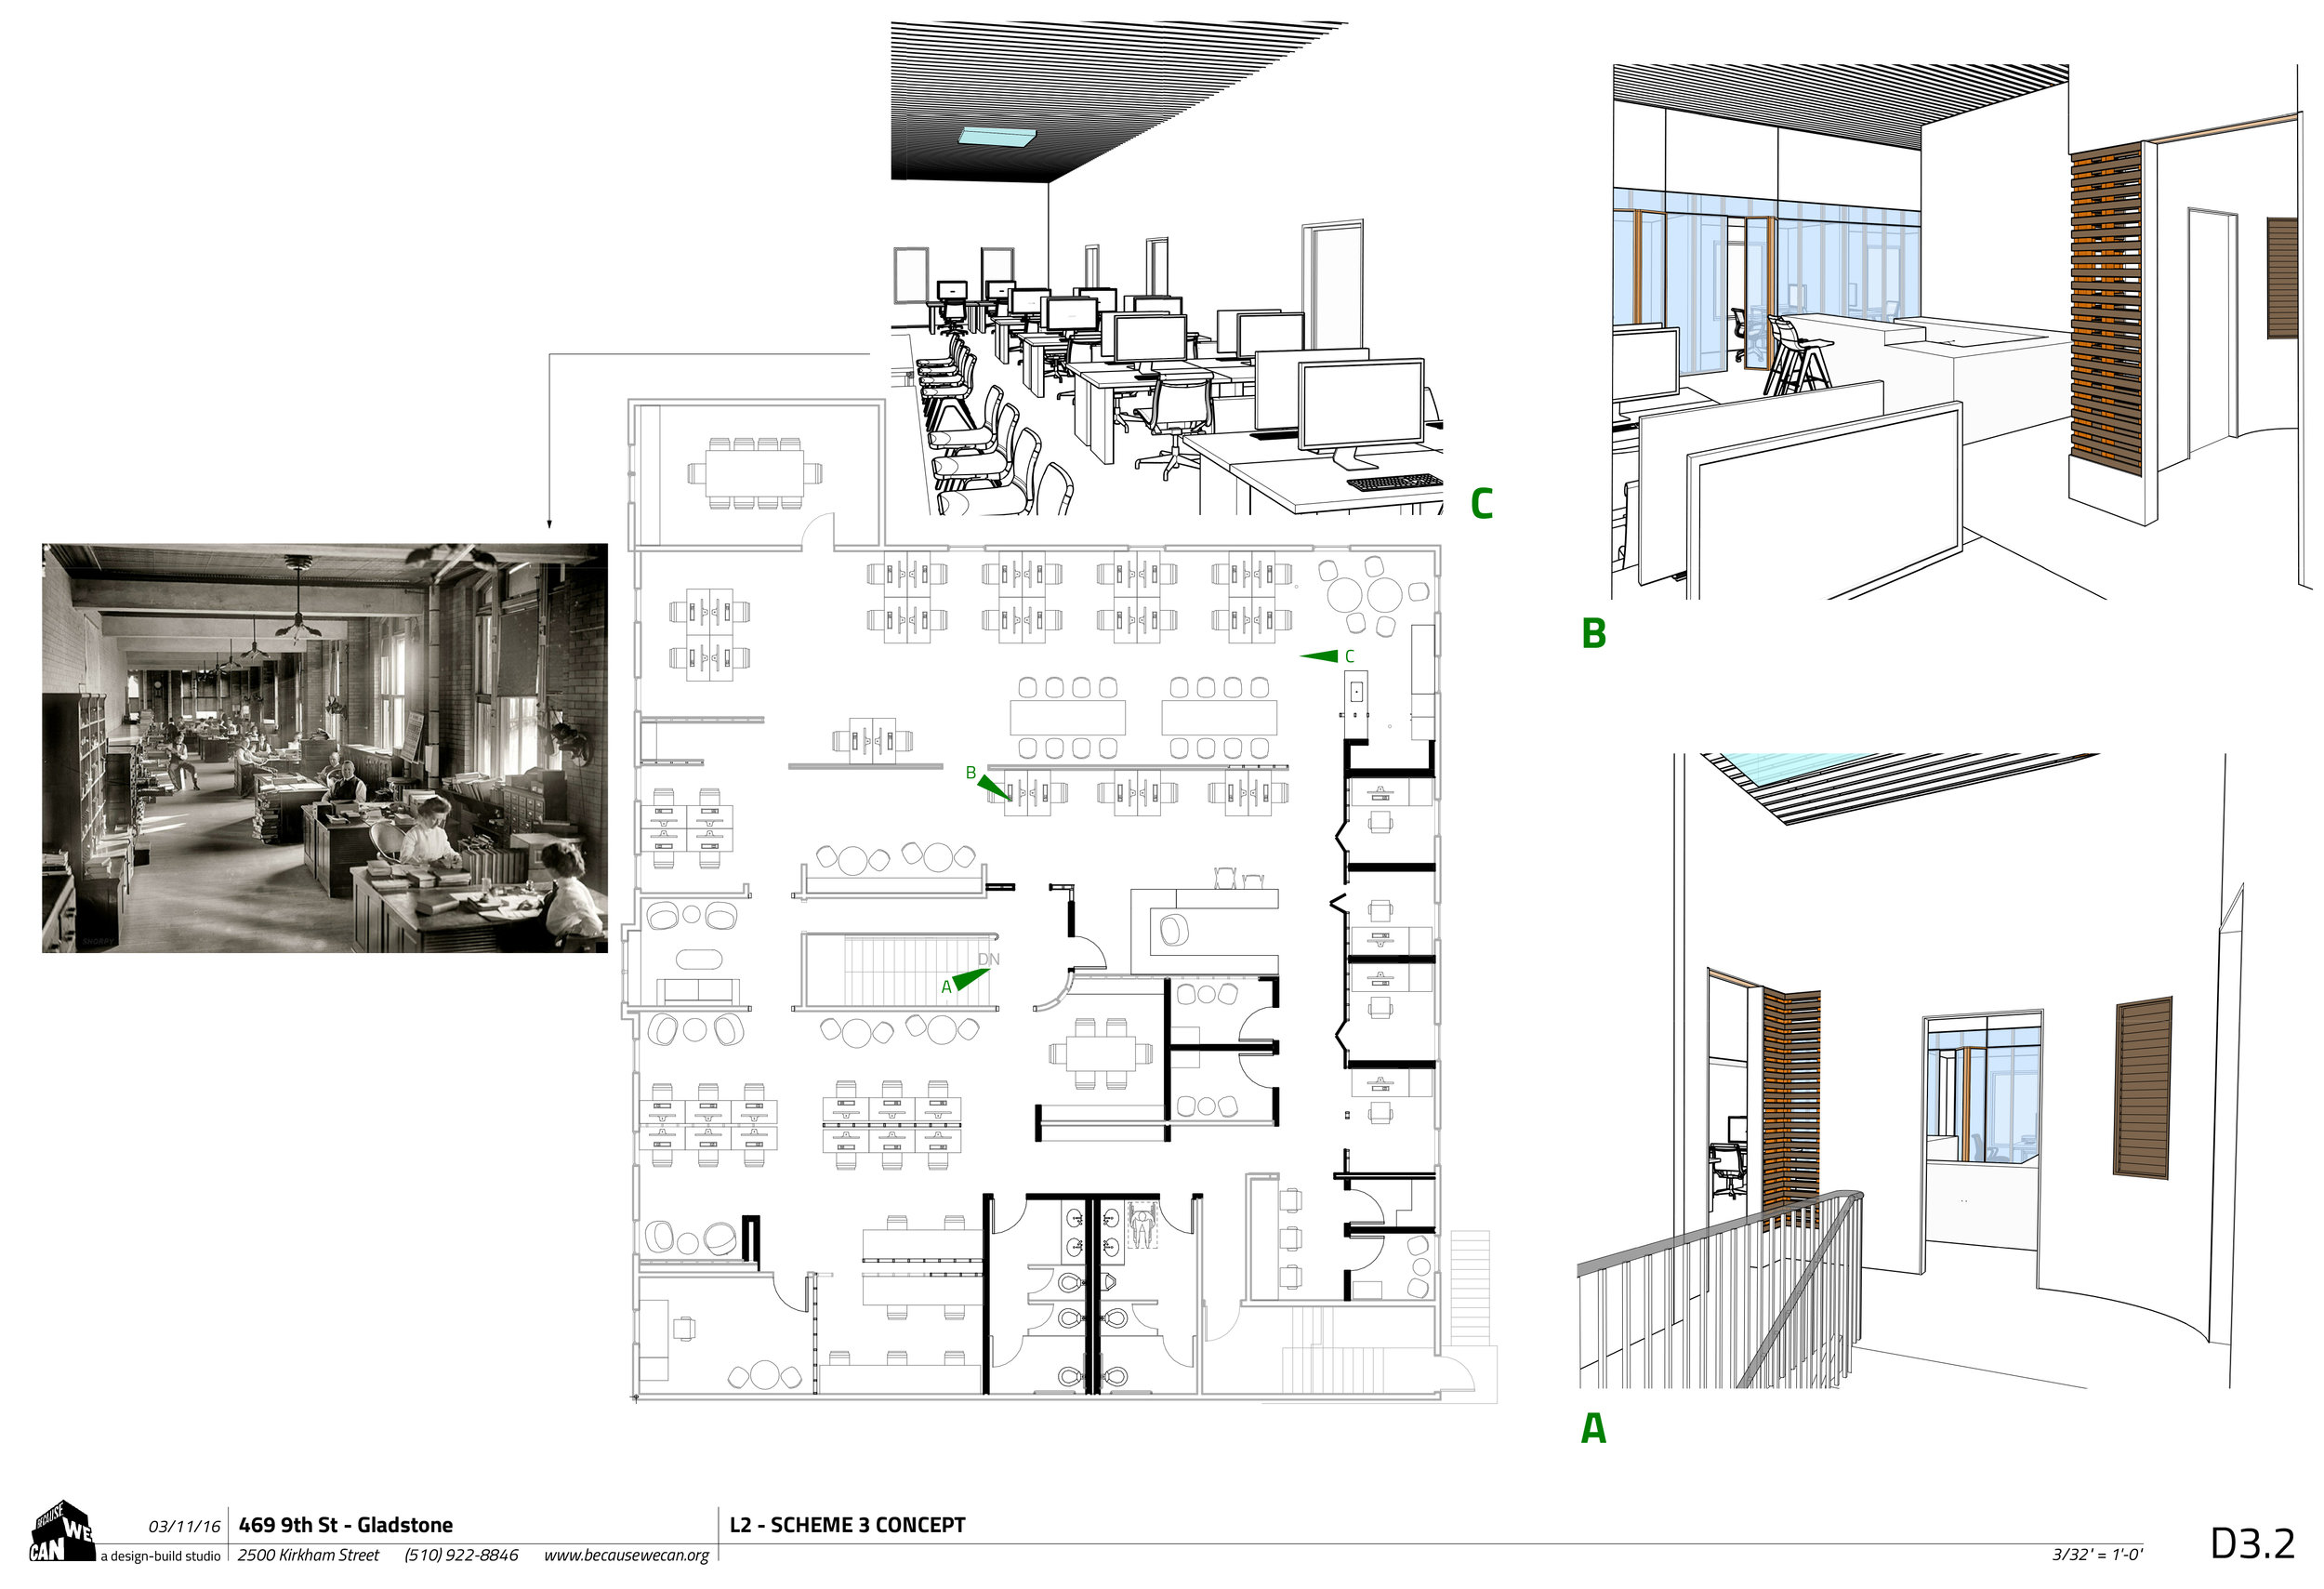 The run down interiors were in desperate need of an update. We worked with the client on how to use what was there to keep costs affordable in this stretch of three floors tall and three buildings wide historic renovation.